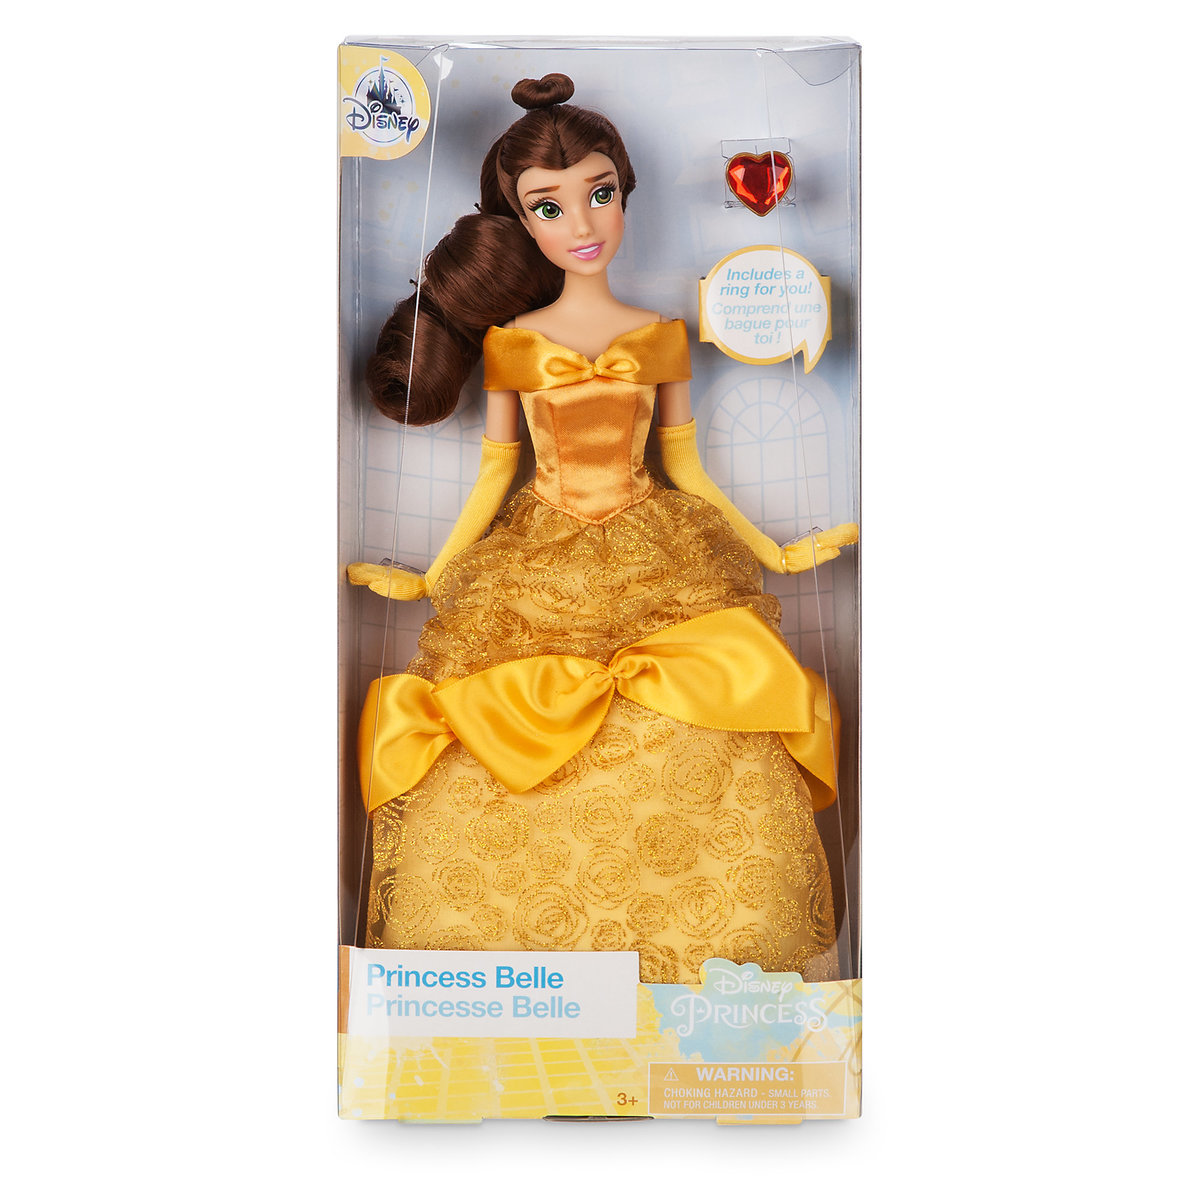 Belle Classic Doll with Ring - Beauty and the Beast - 12'' ของแท้ นำเข้าจากอเมริกา